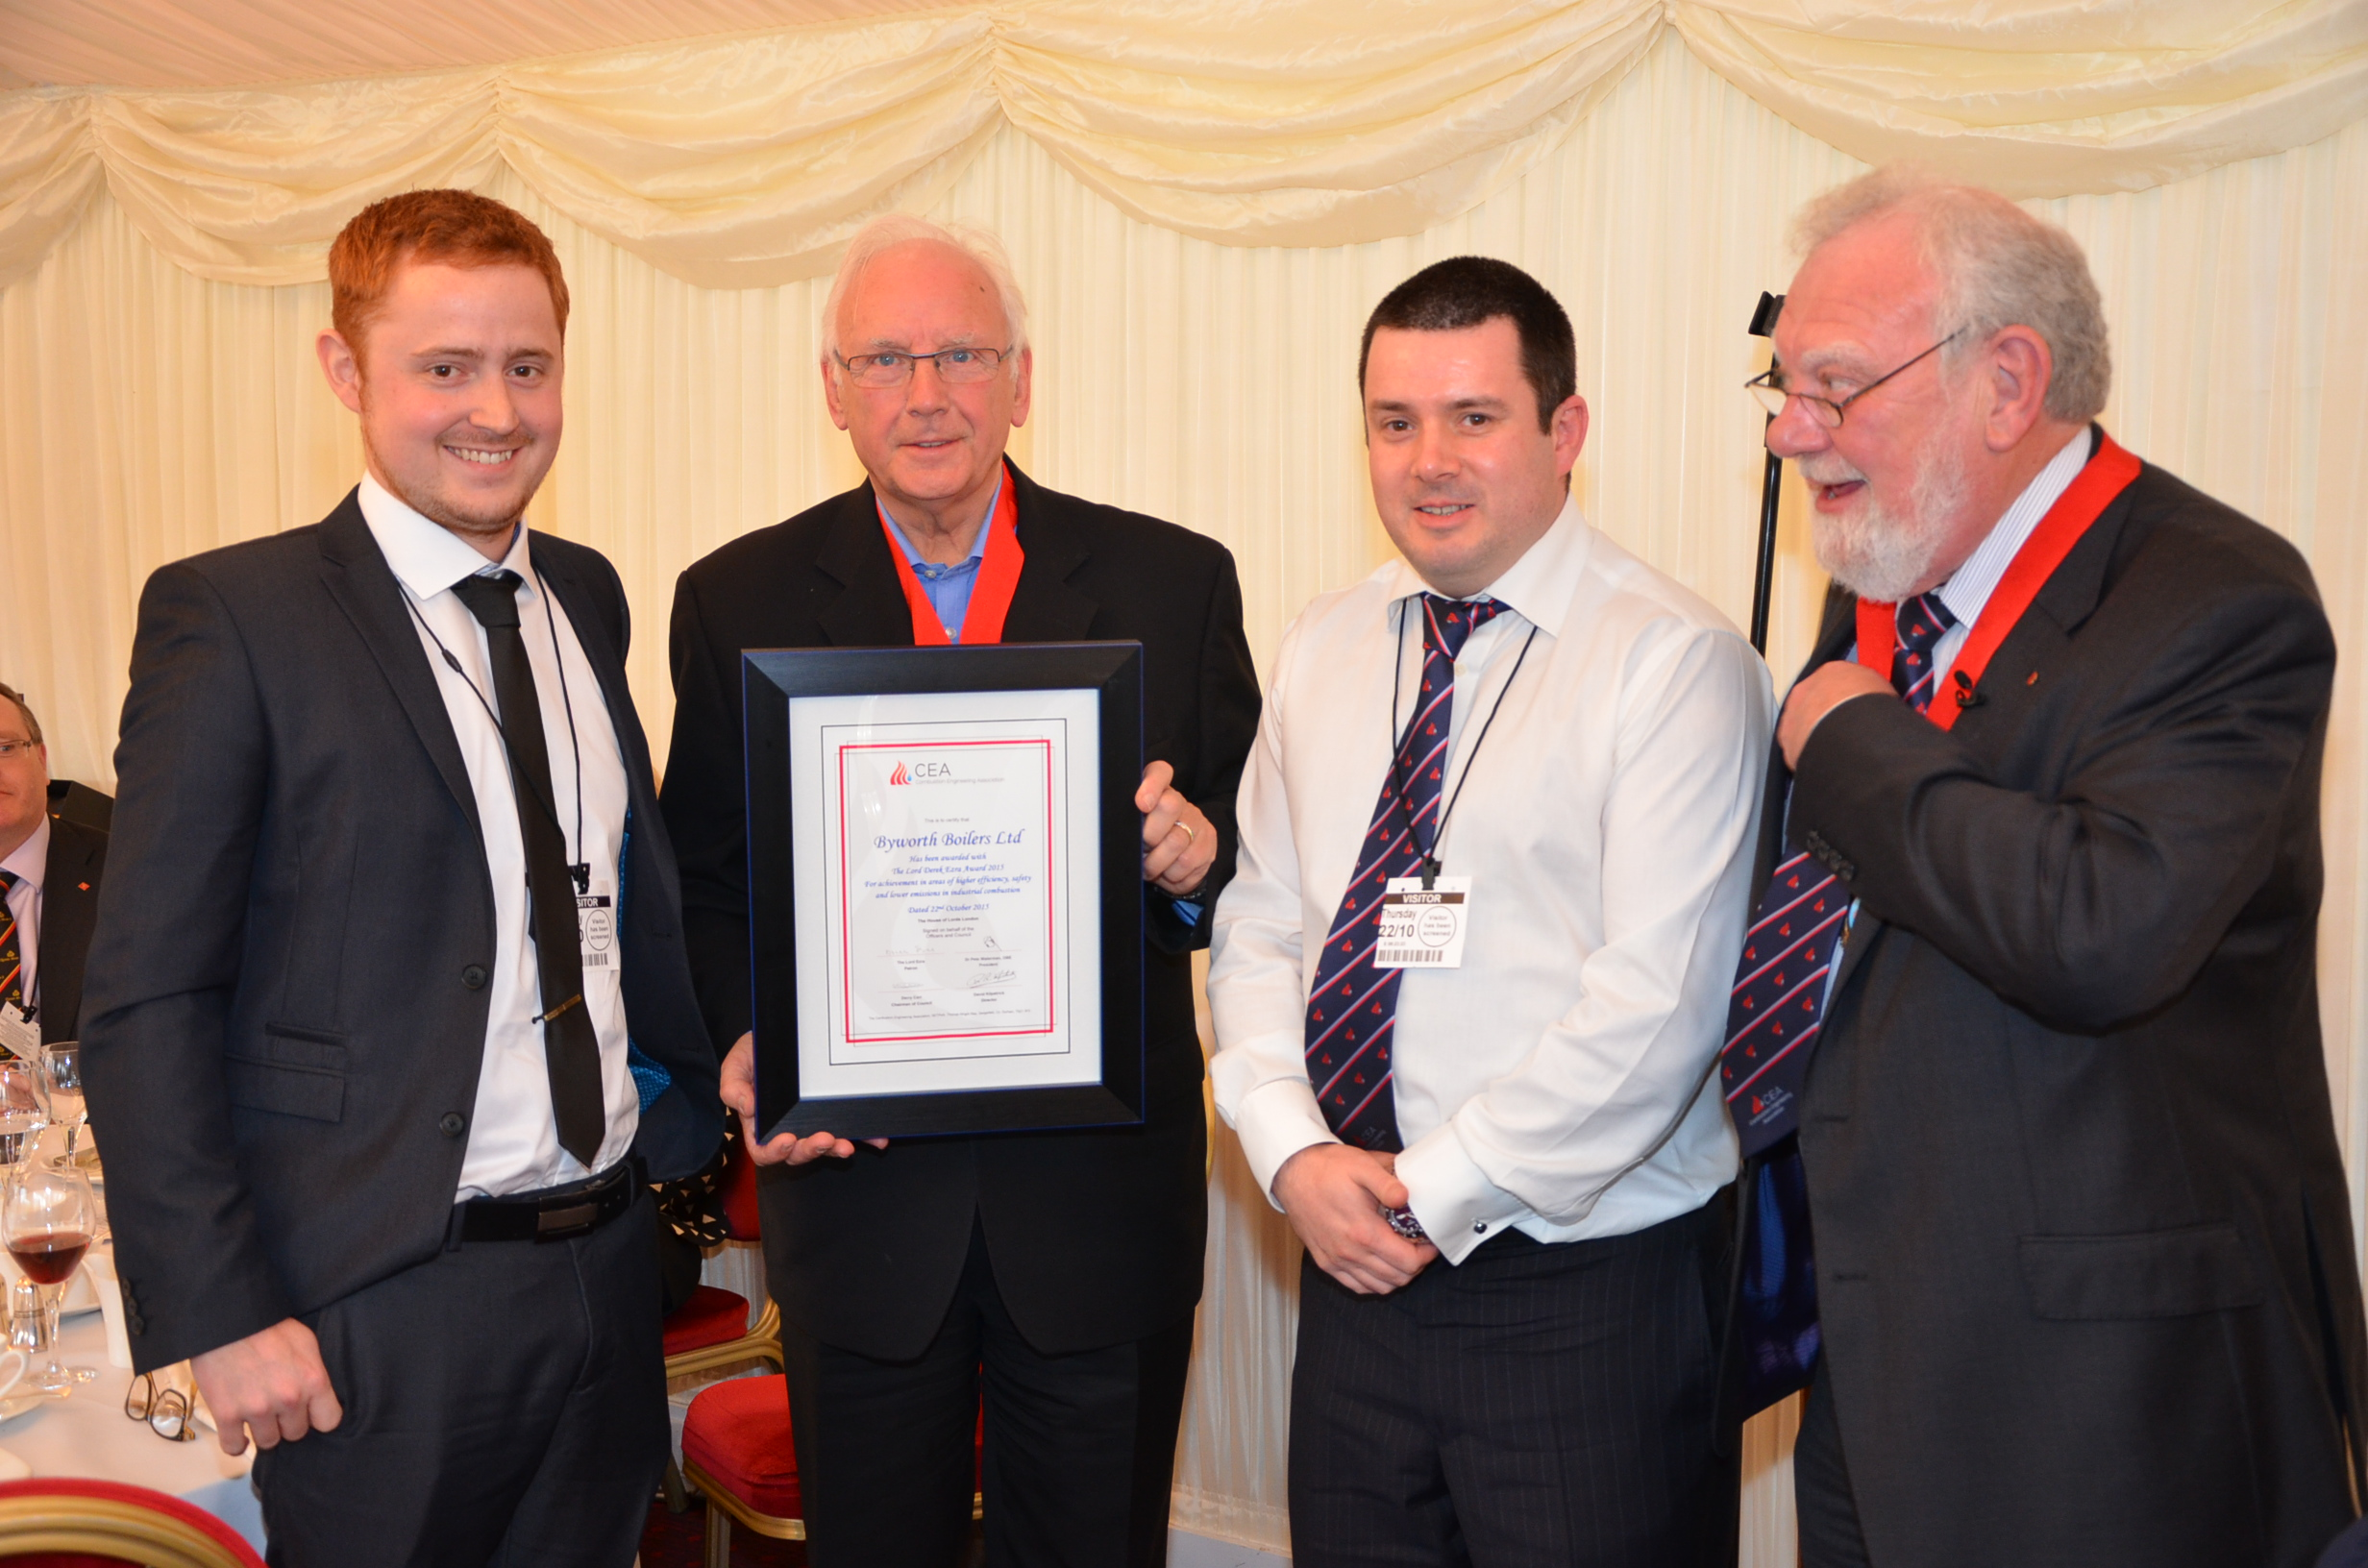 Byworth wins award at the House of Lords